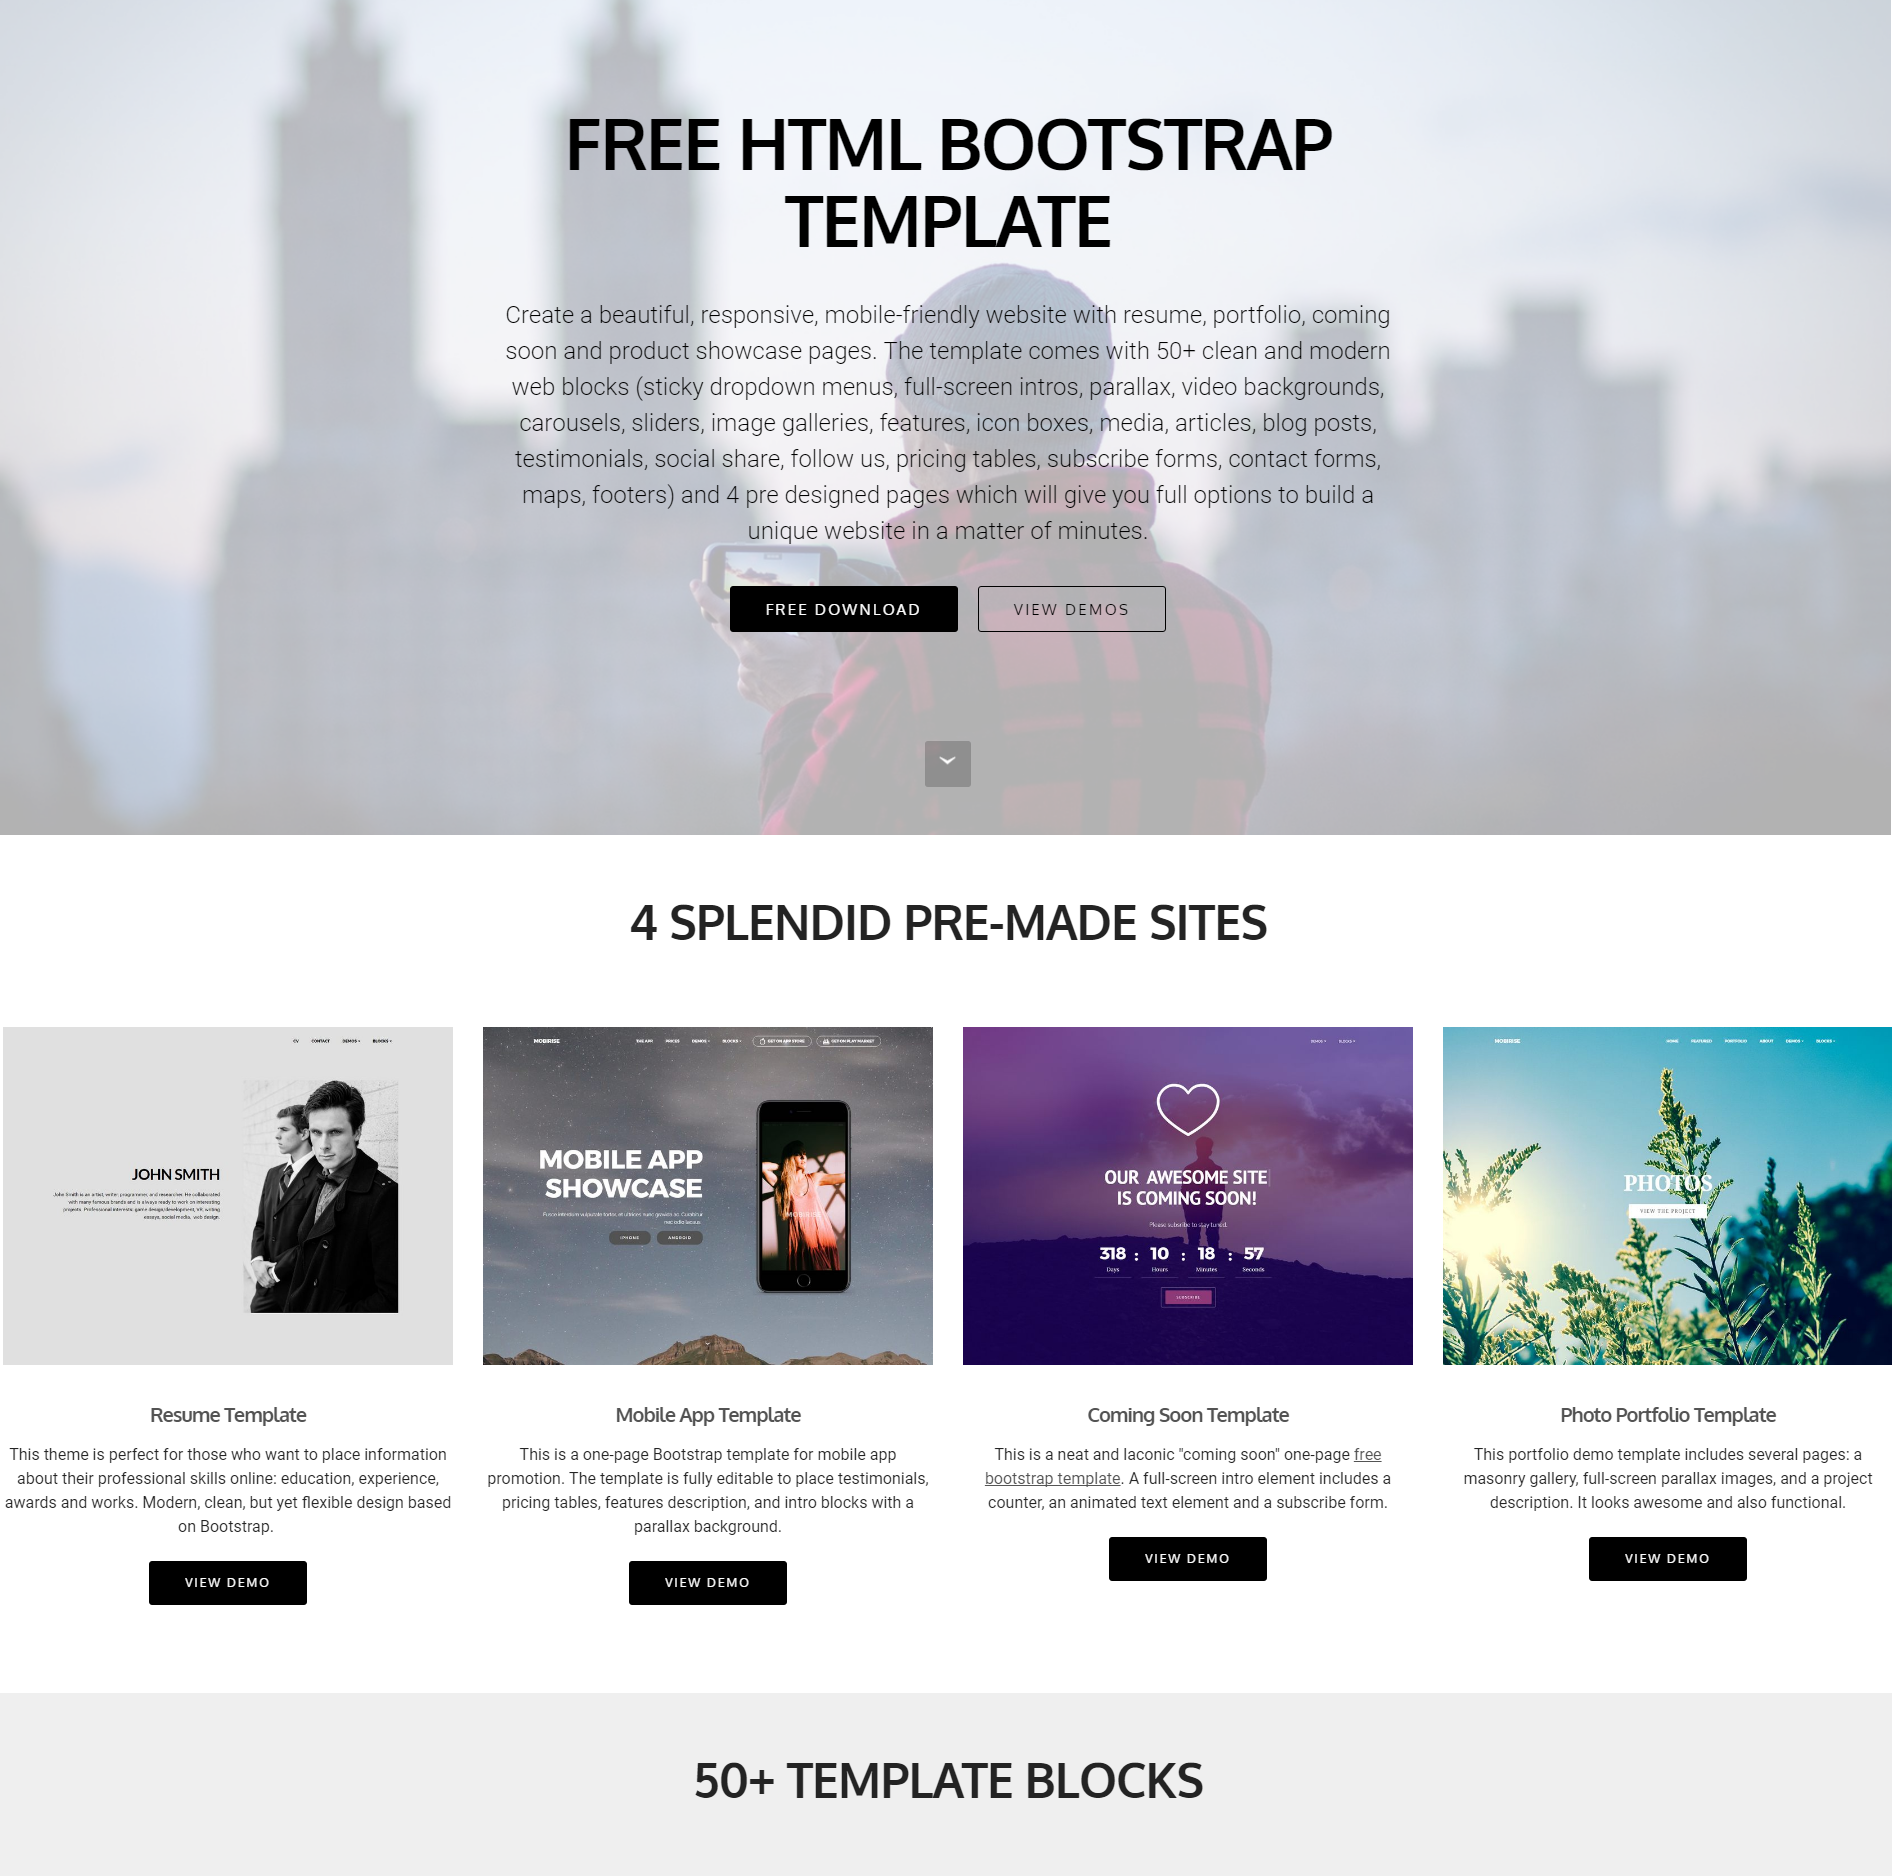 30+ Free HTML5 Bootstrap Templates of 2019 That Will Wow You